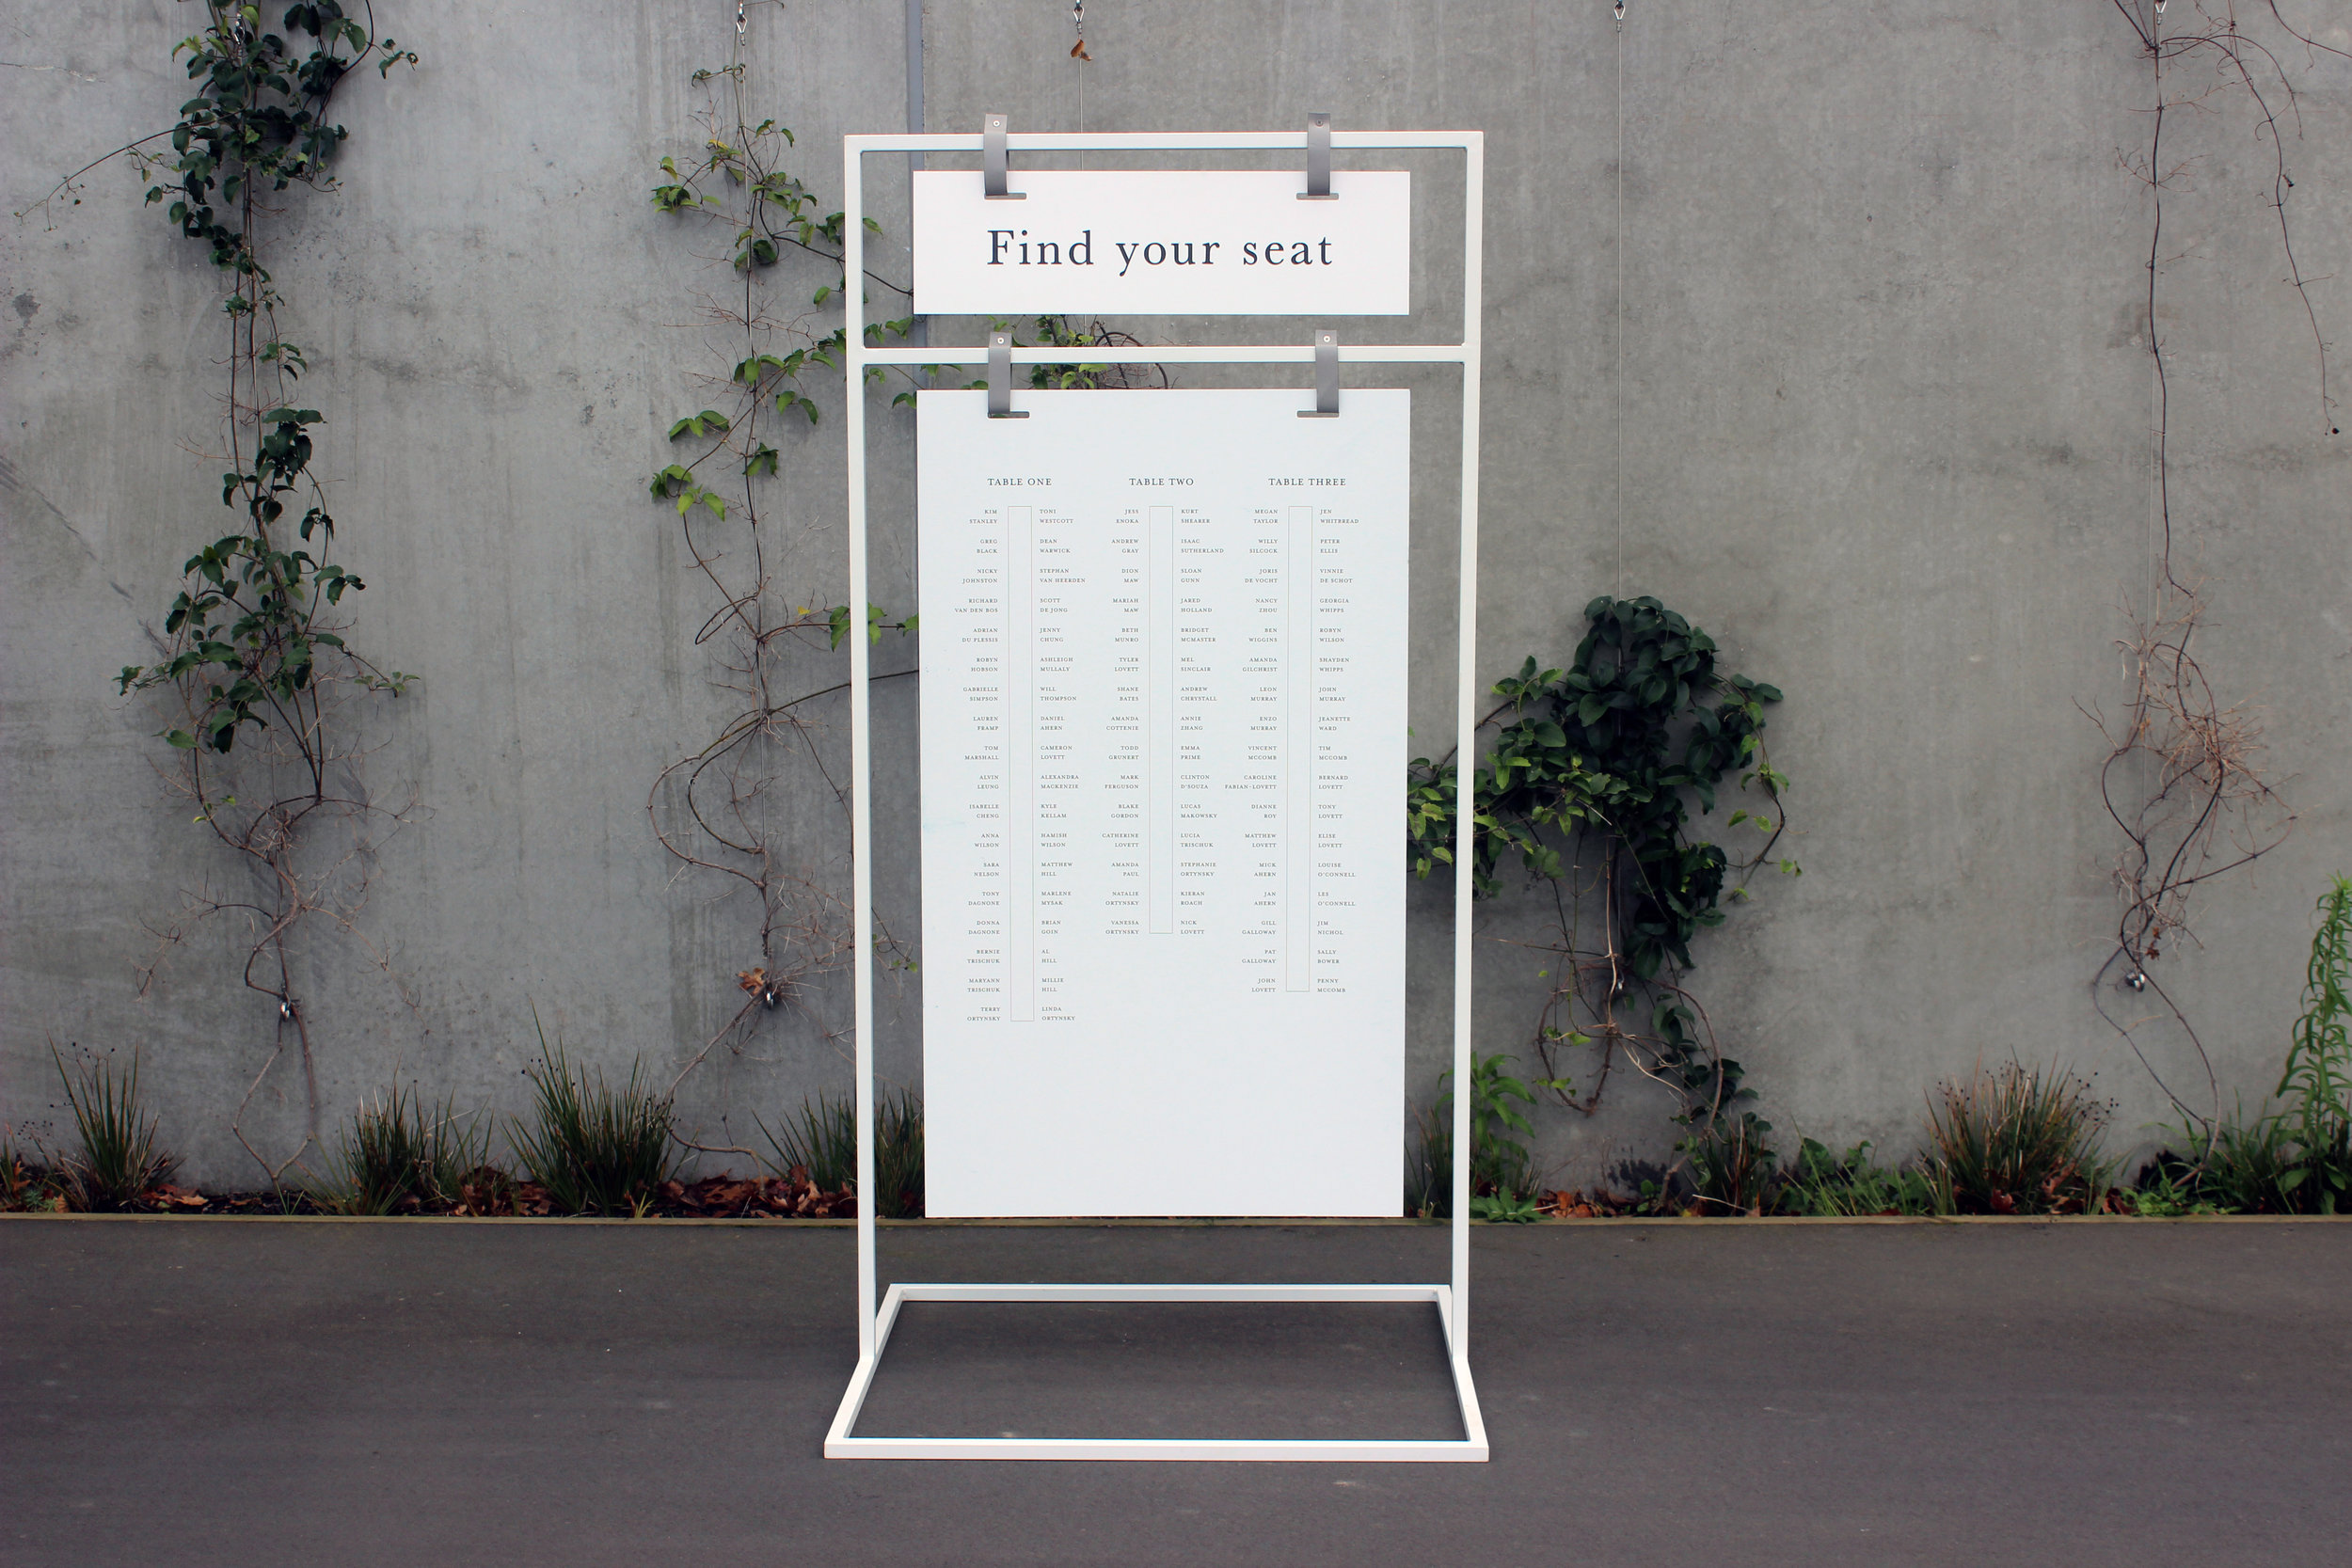 Large Signage Stand - White - 90cm wide x 1.8m highIncludes matte white acrylic, can be customisedPOA